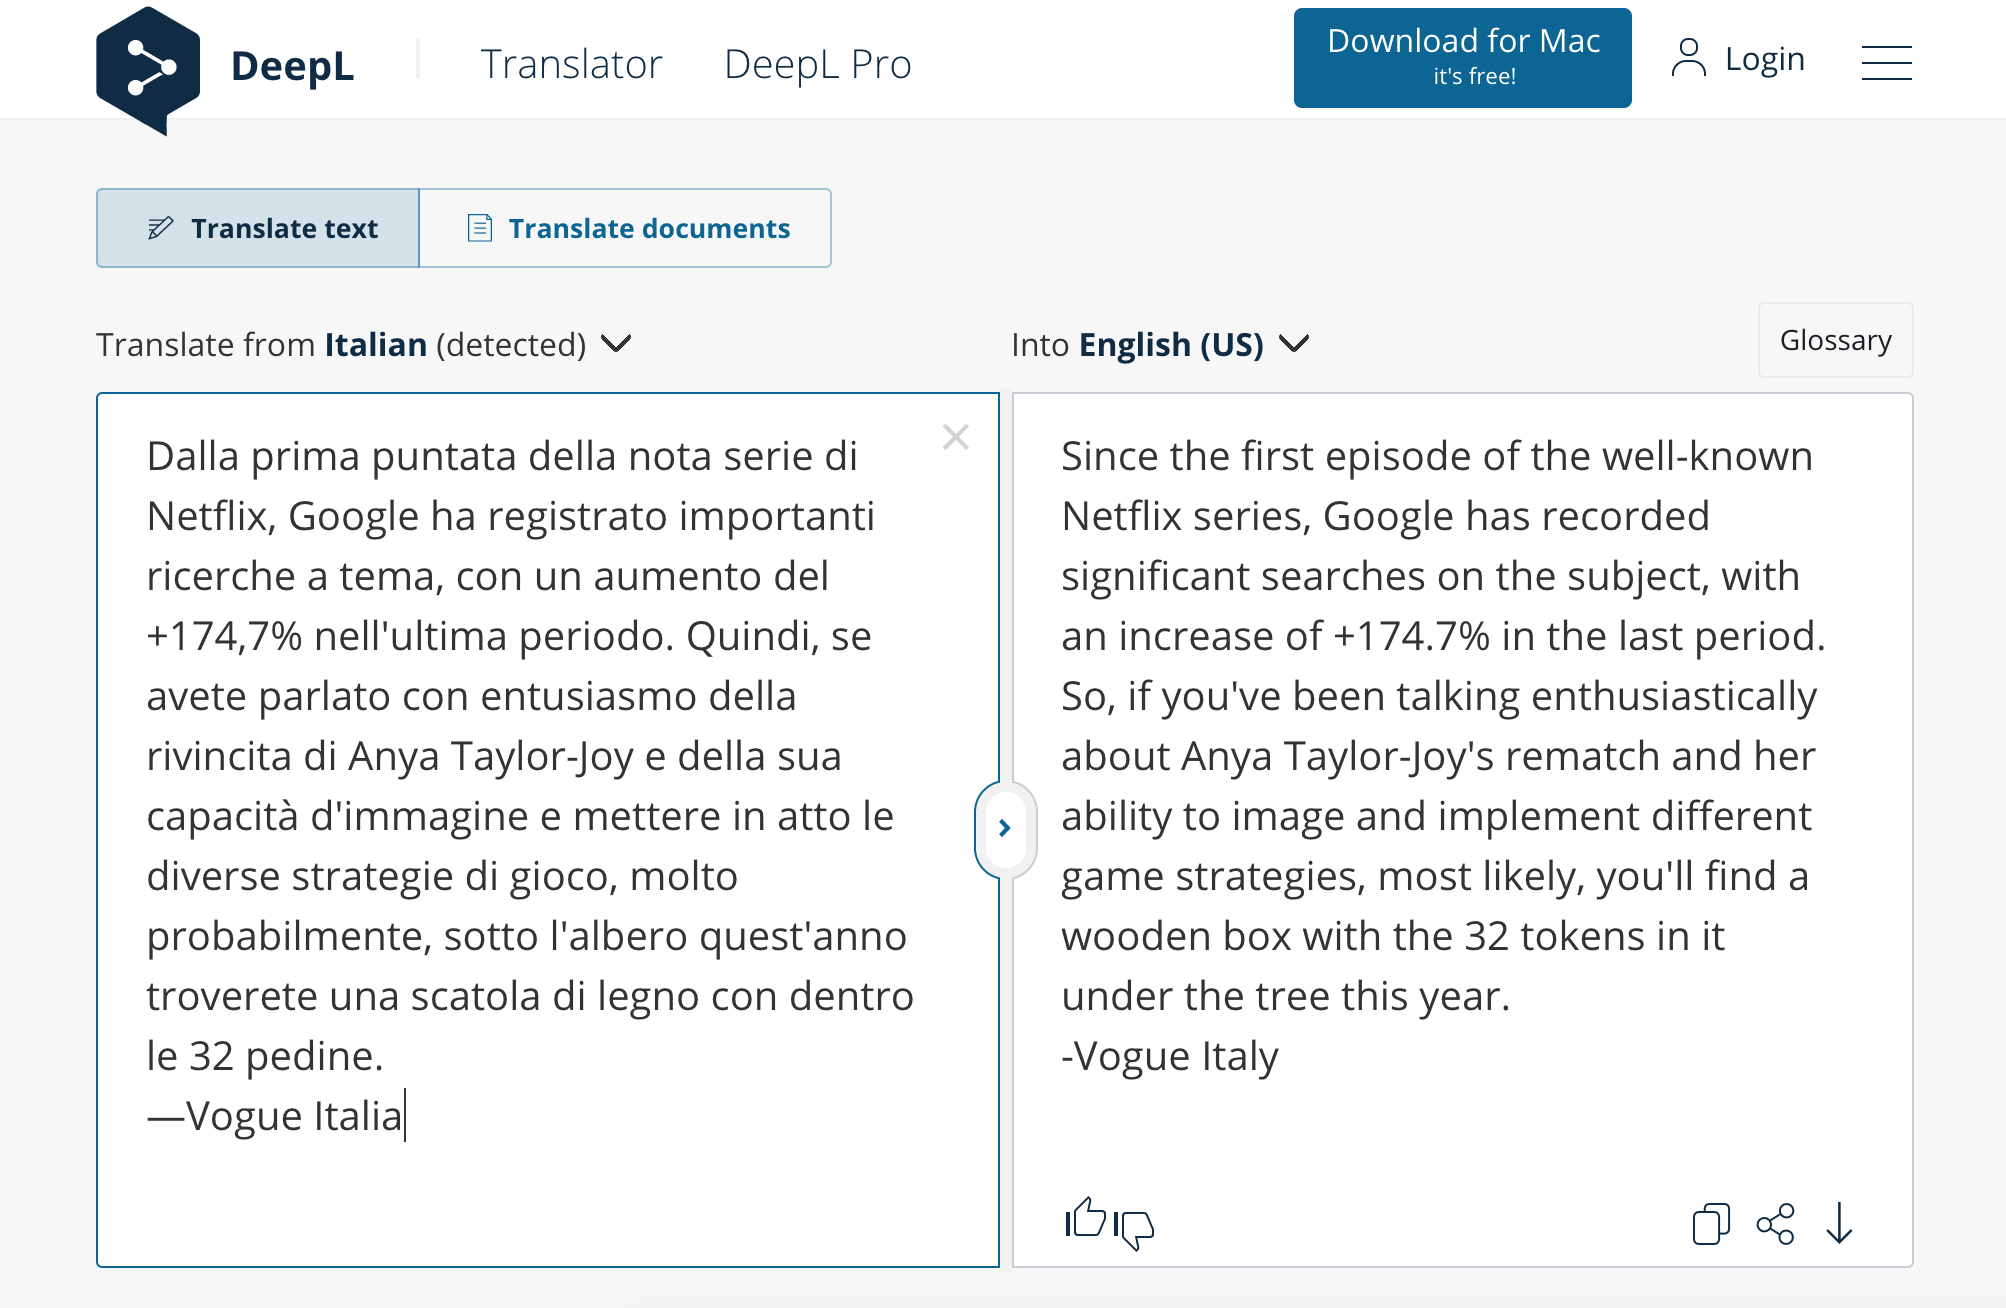 The DeepL translator showing an Italian paragraph from Vogue Italia translated into English